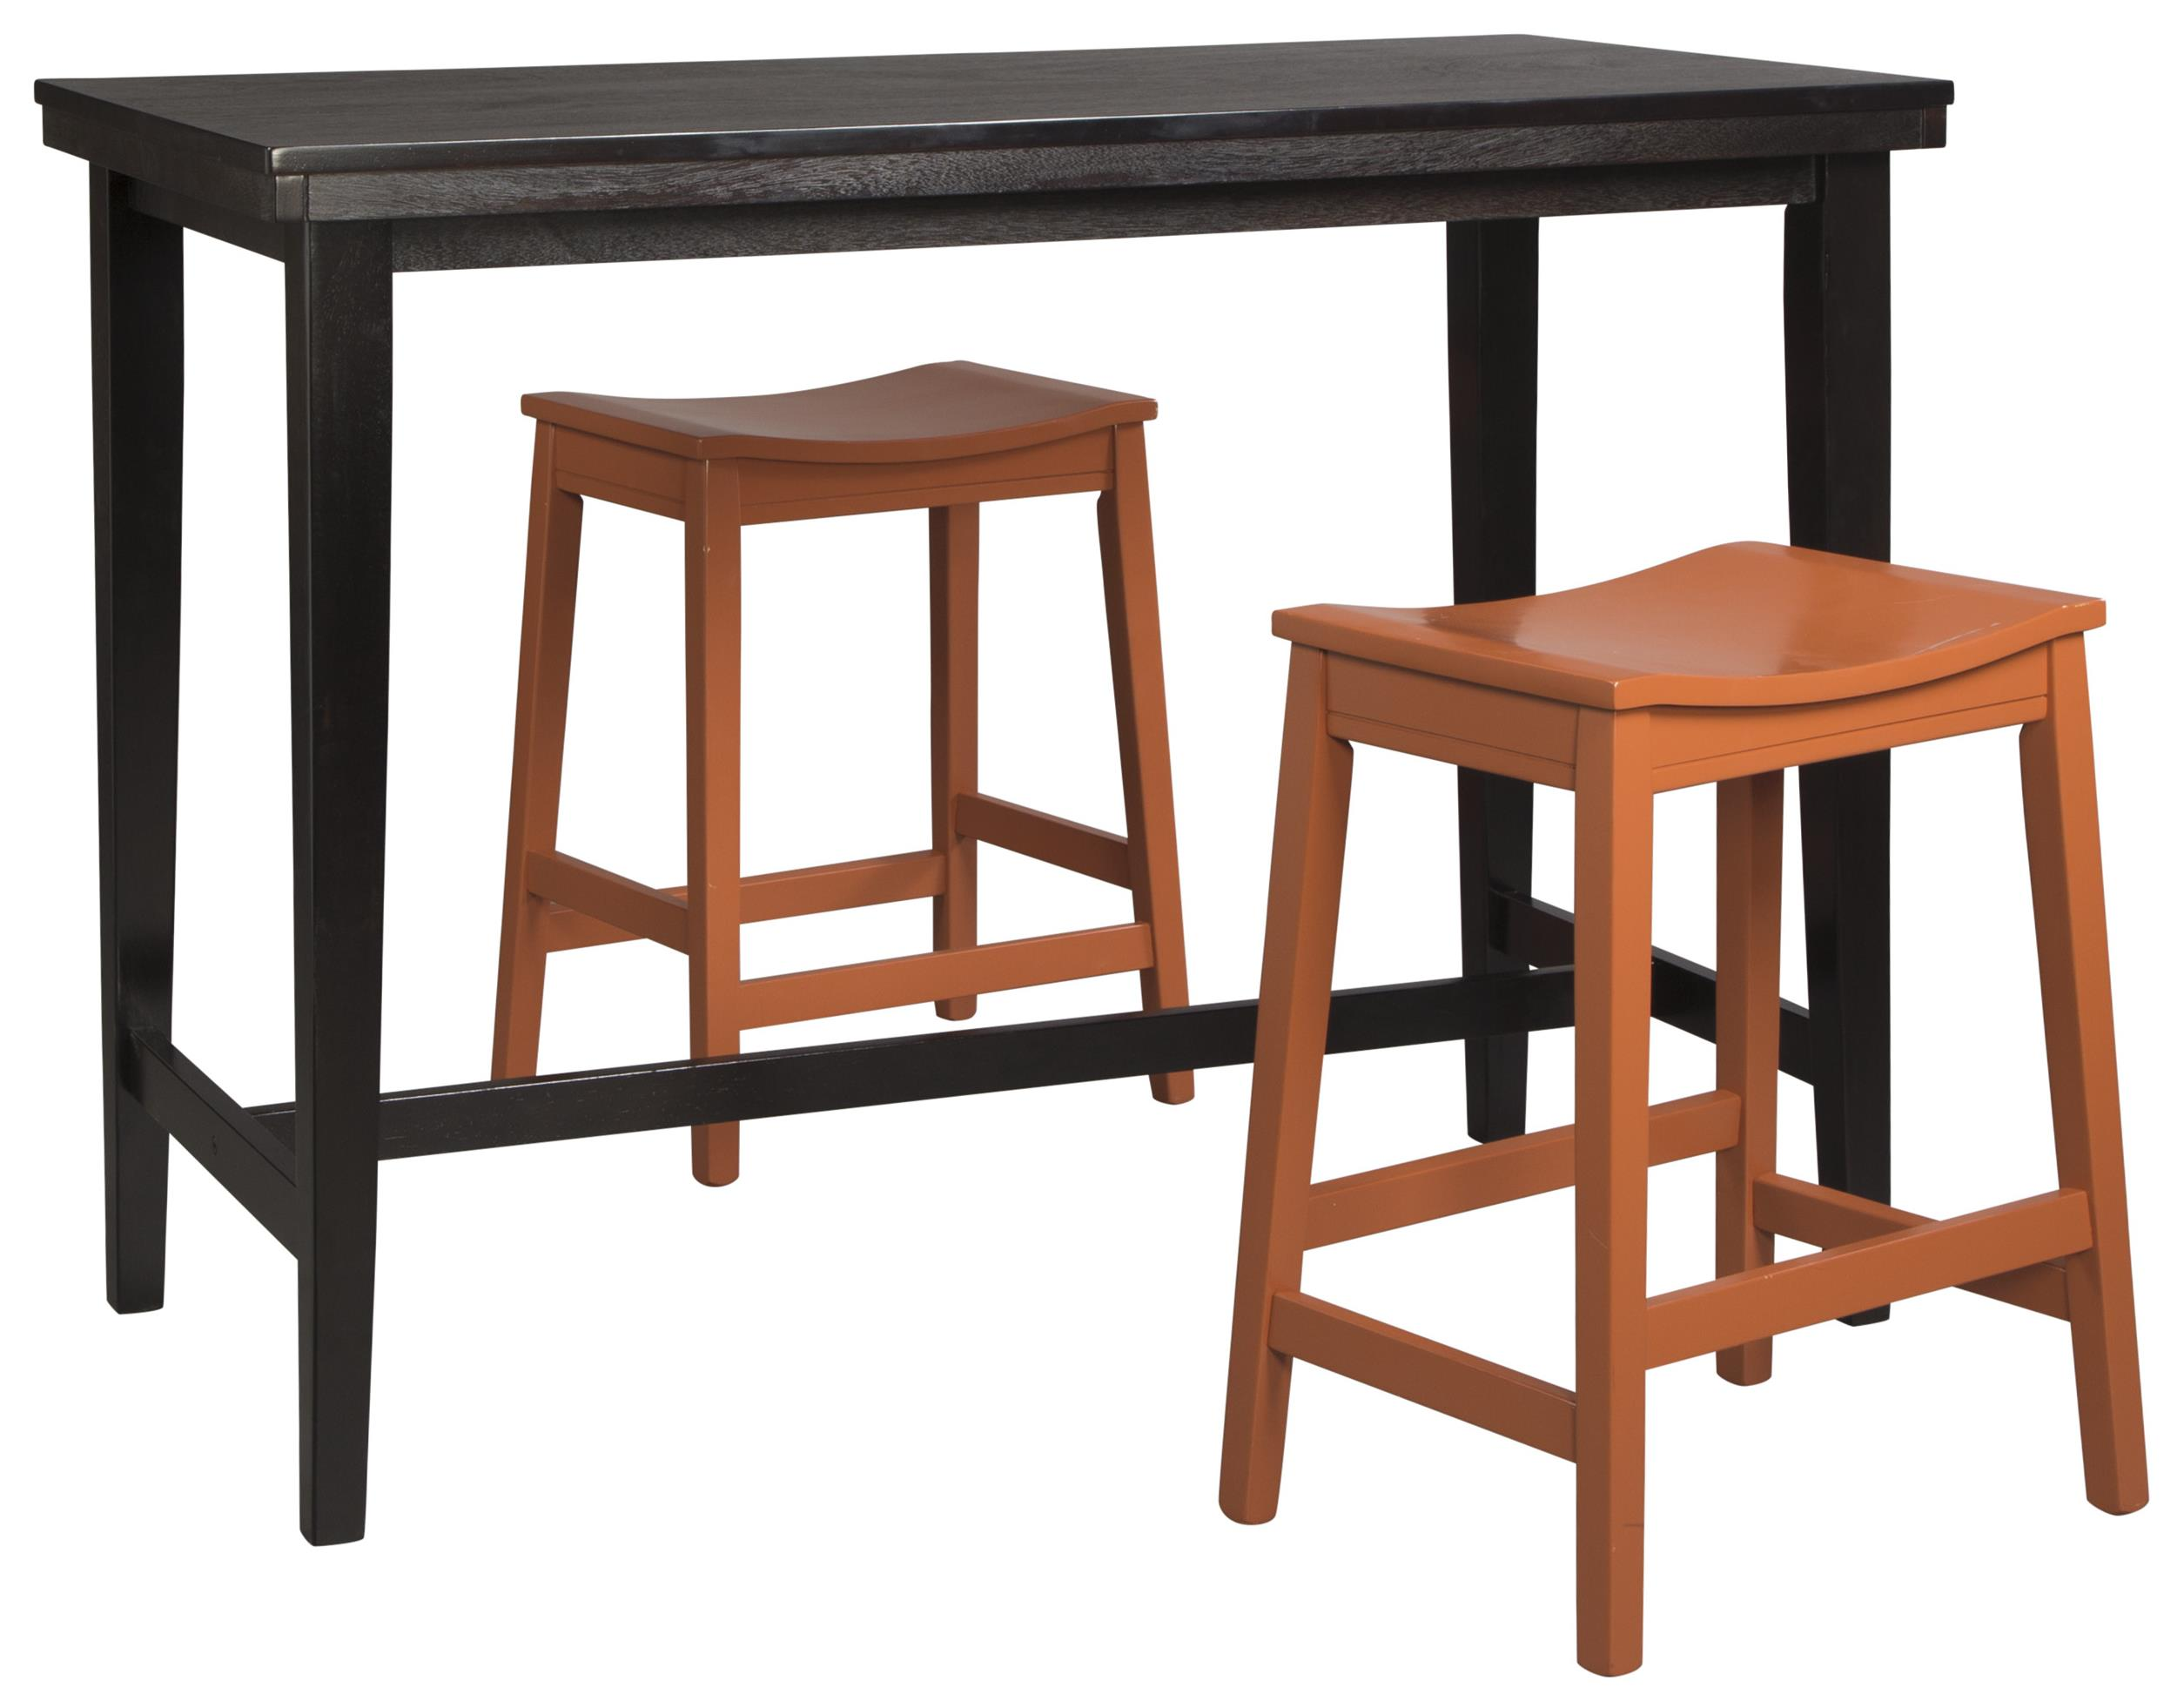 Signature Design by Ashley Kimonte 3-Piece Counter Table Set - Item Number: D250-13+2xD389-0424